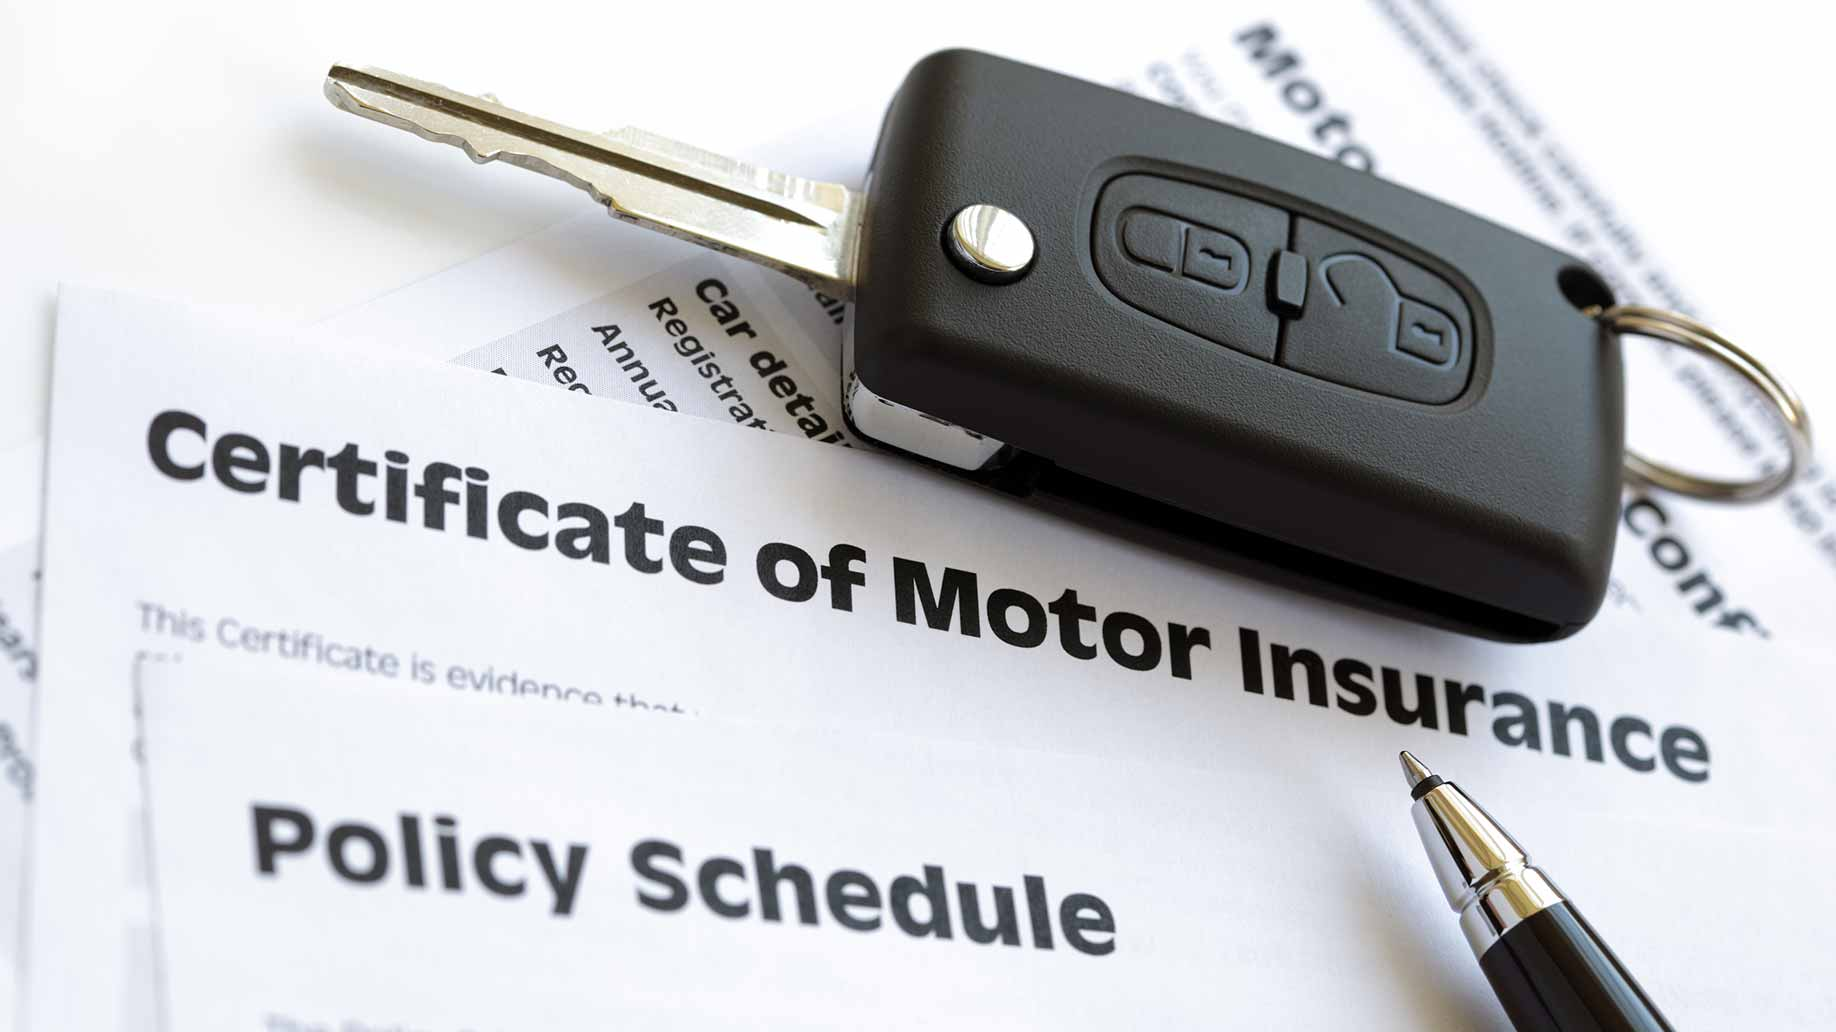 vehicle insurance policy schedule forms on desk with keys